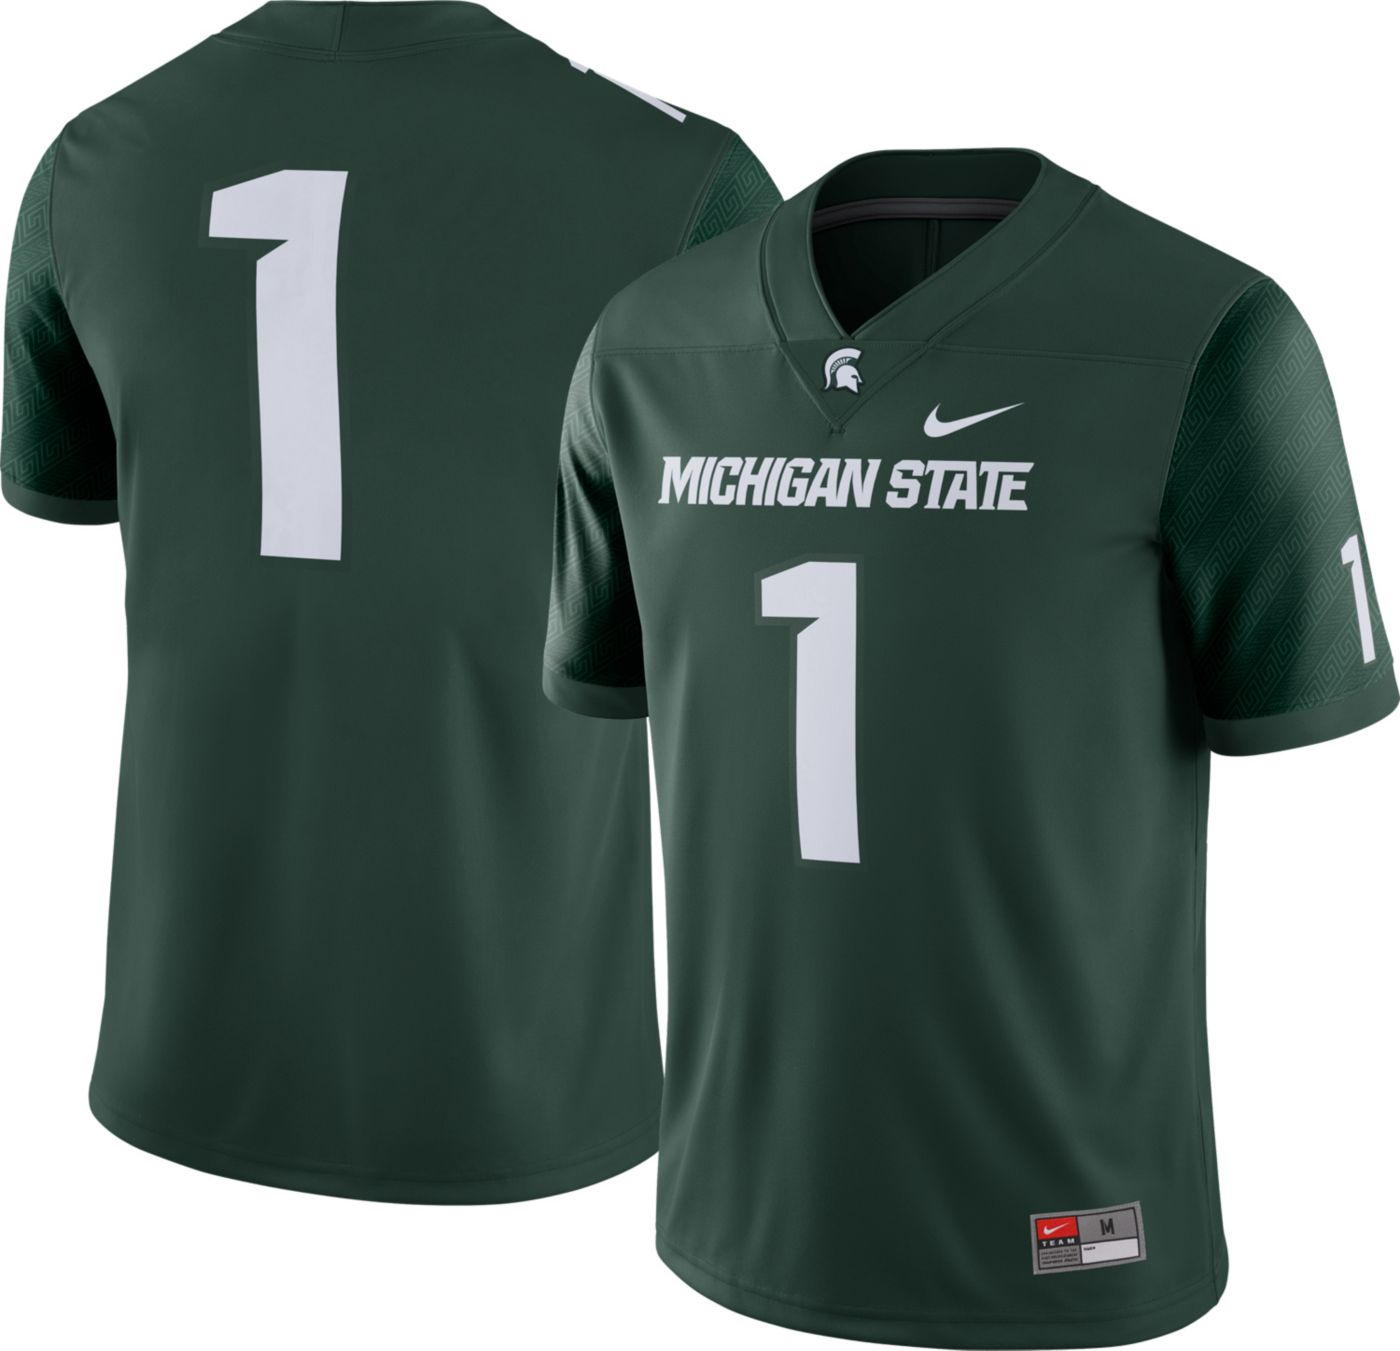 Nike Men's Michigan State Spartans #1 Green Dri-FIT Game Football Jersey